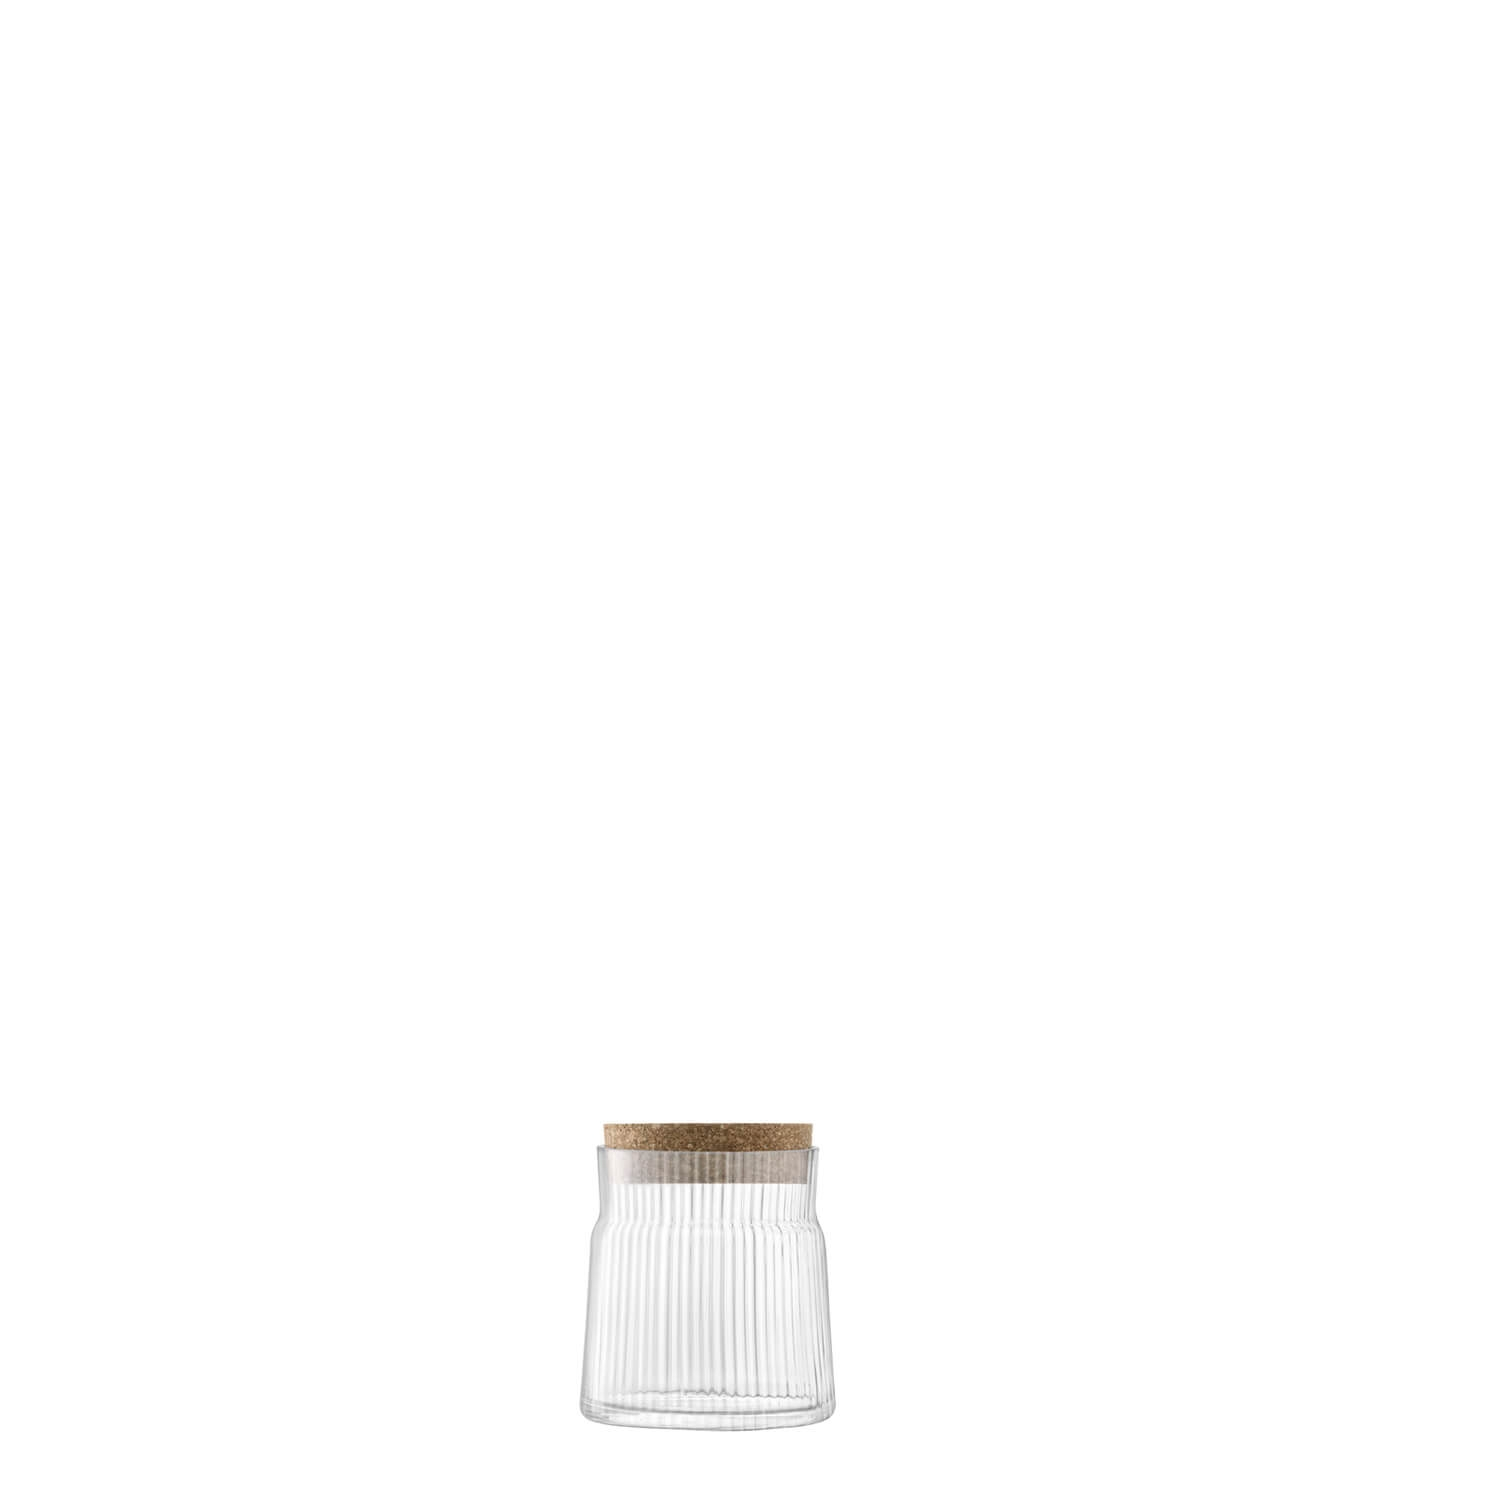 Image of LSA, Gio Line, Container and Cork, Clear